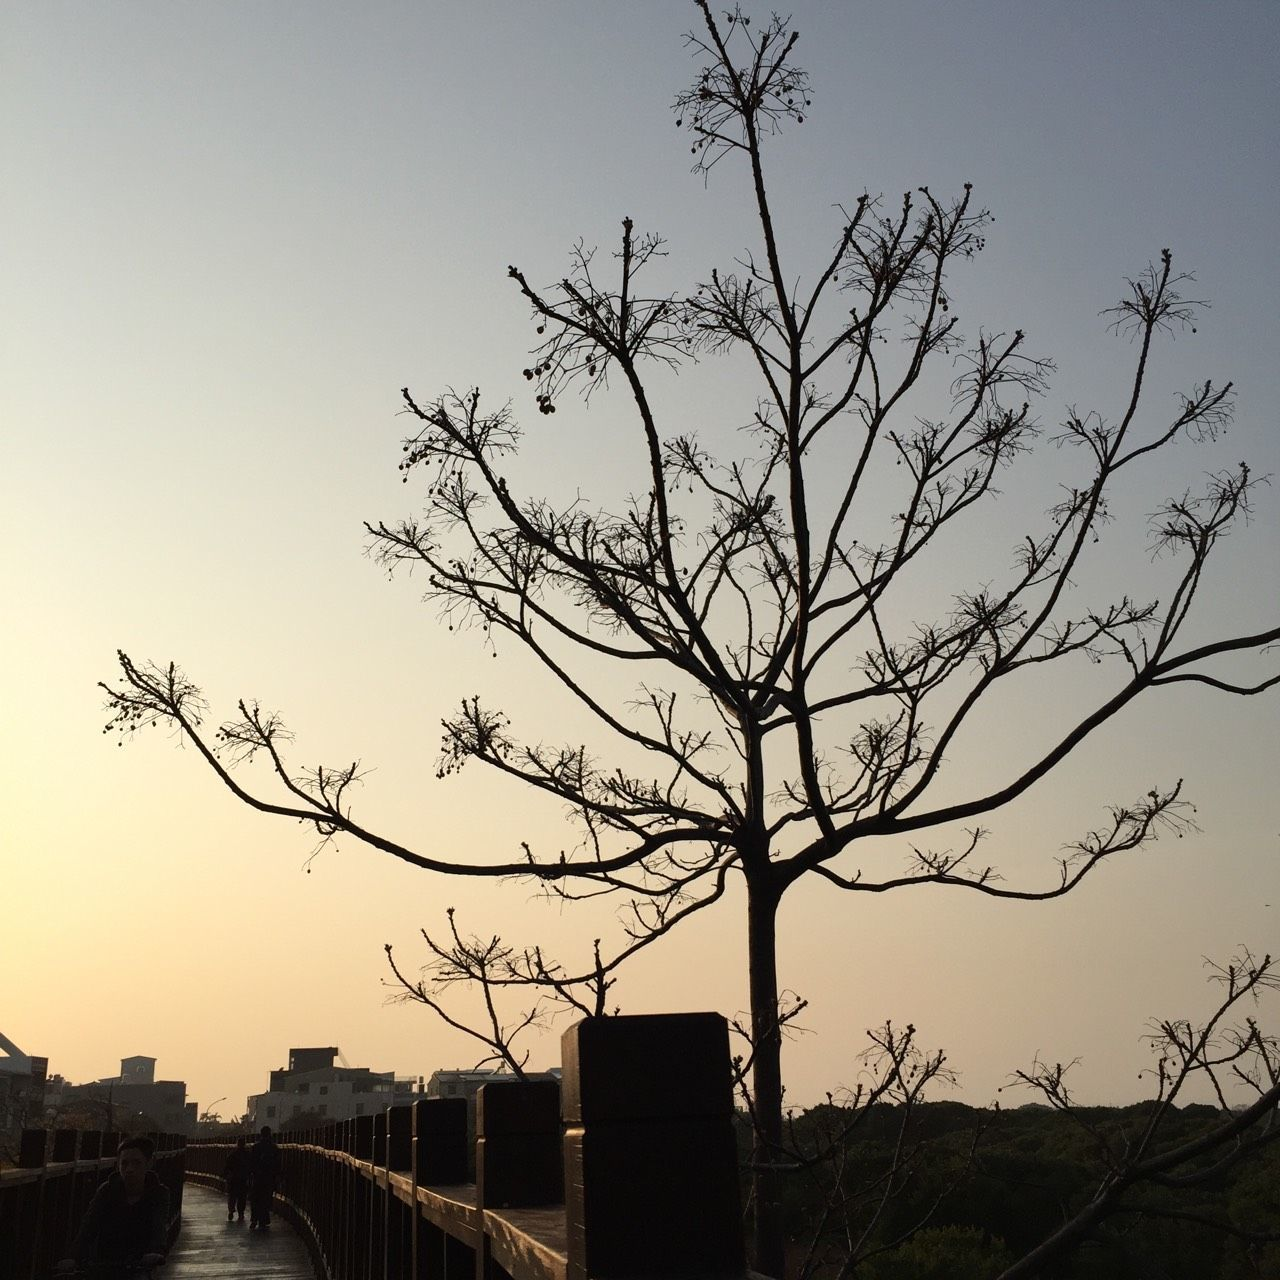 silhouette, tree, built structure, architecture, no people, outdoors, building exterior, sunset, bare tree, sky, city, branch, nature, day, bird